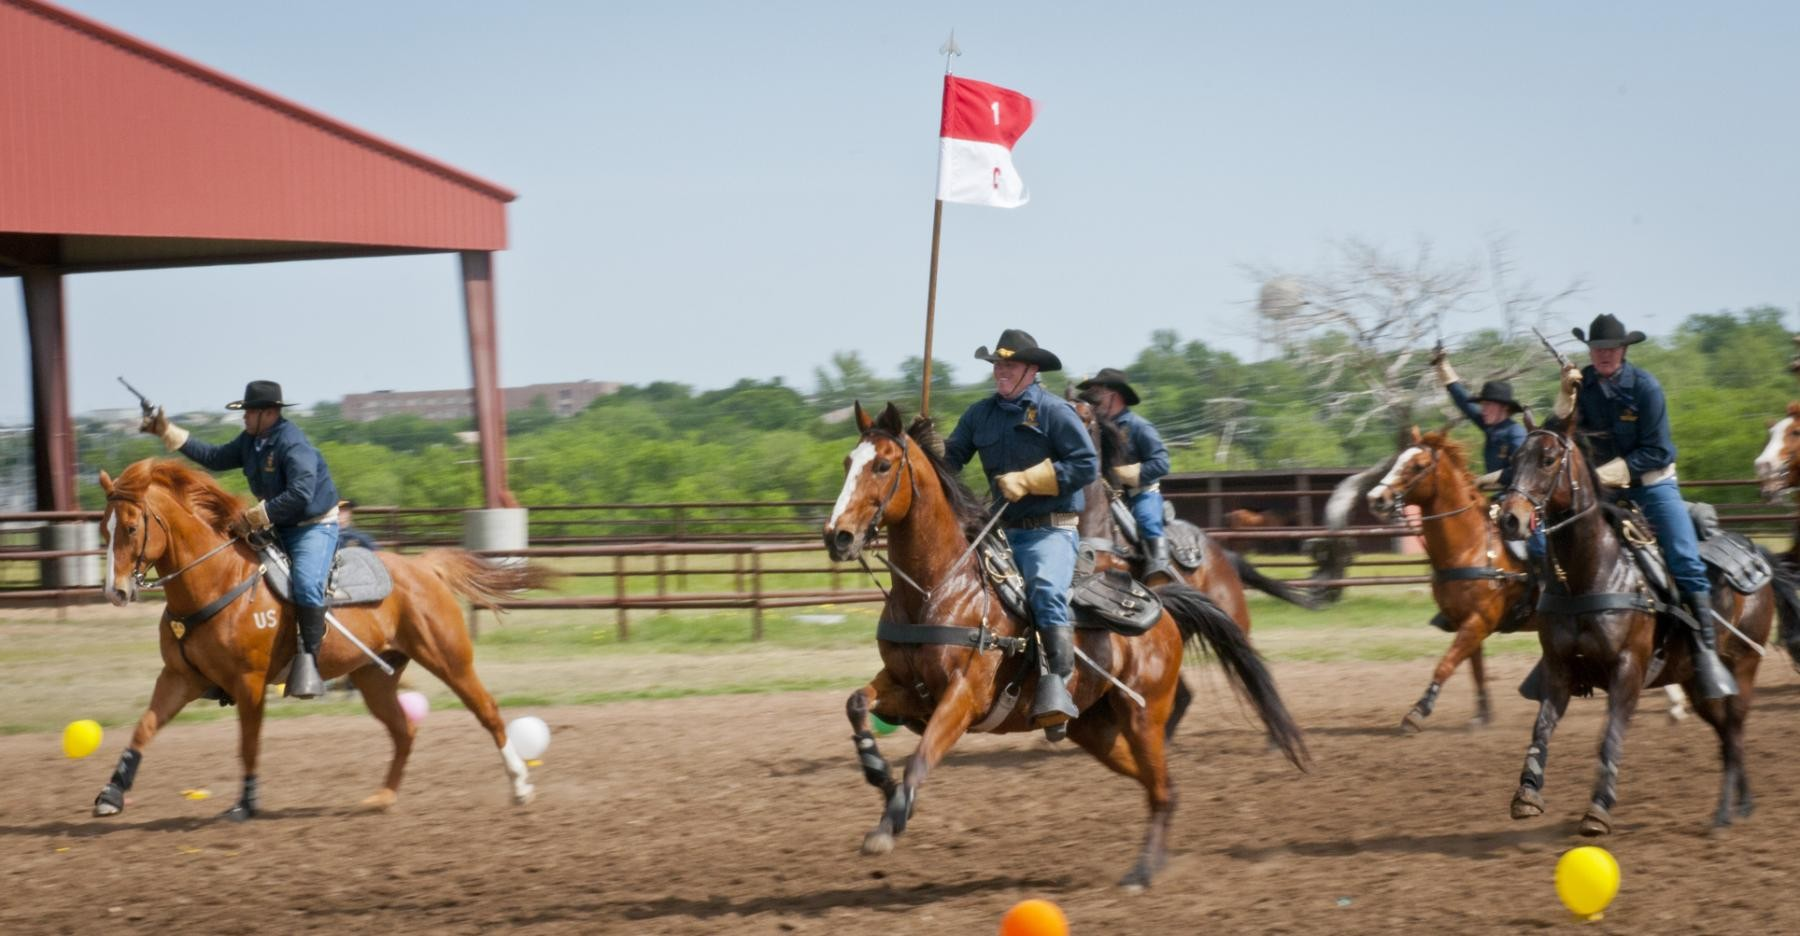 1st cavalry division horse cavalry detachment photo release 2